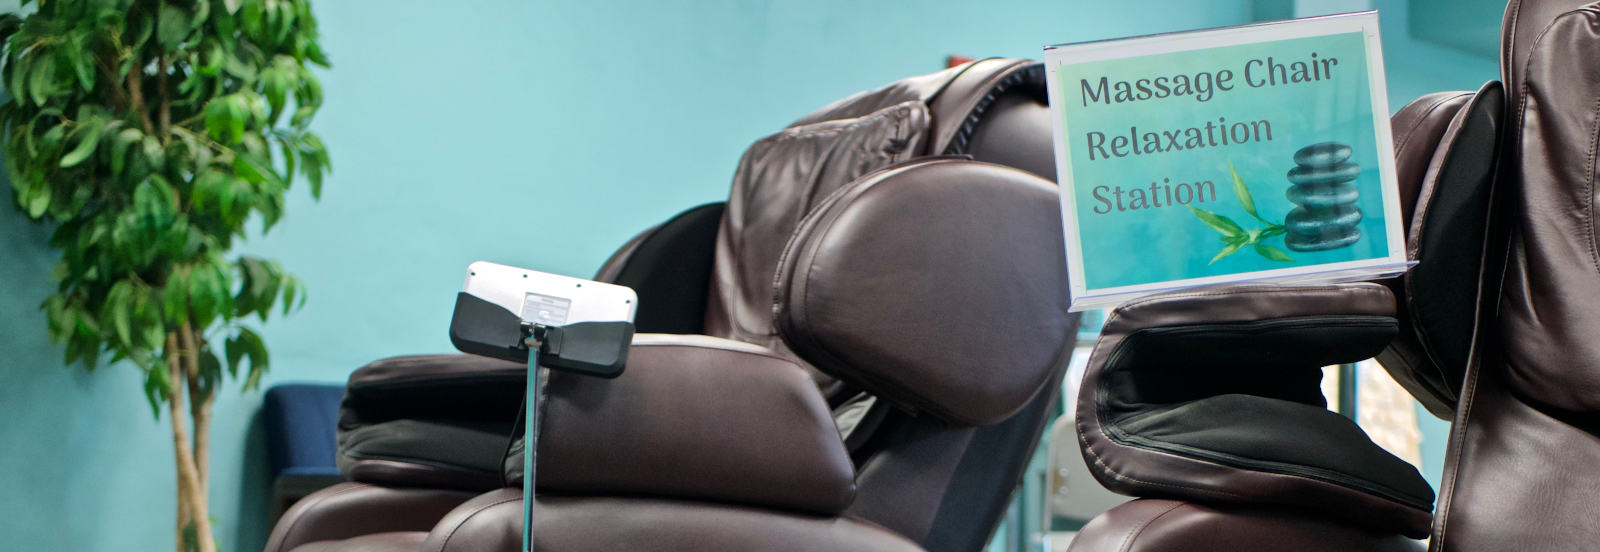 Relaxation Zone Massage Chairs